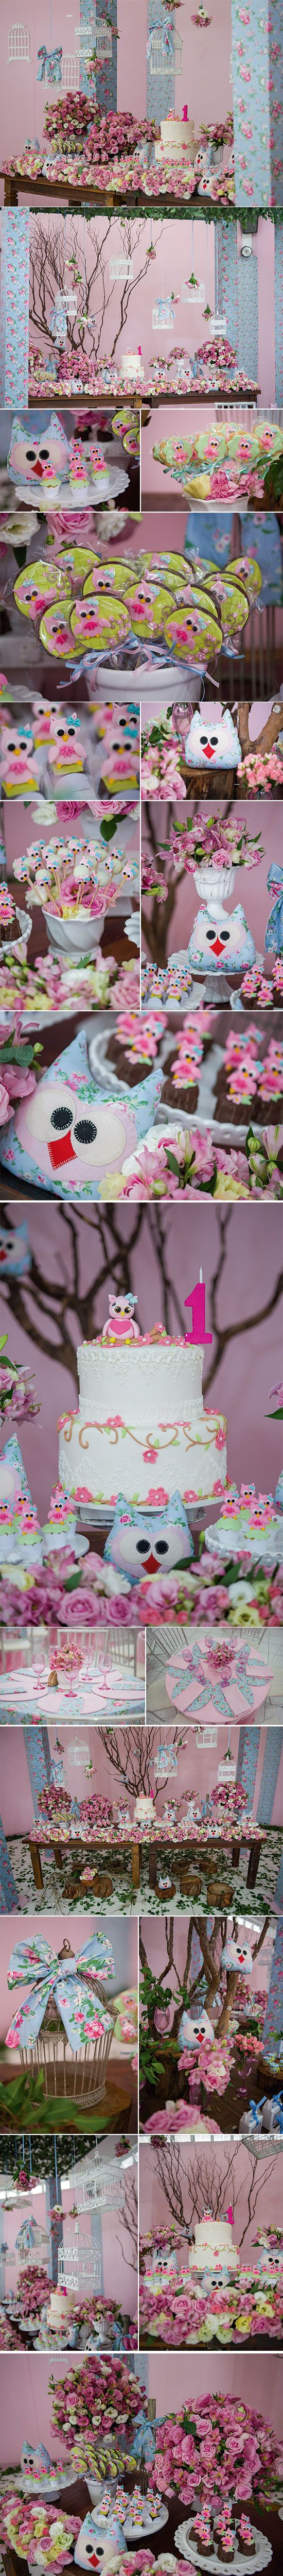 LovelyIdeas  SweetBirthday  Cute and Sweet